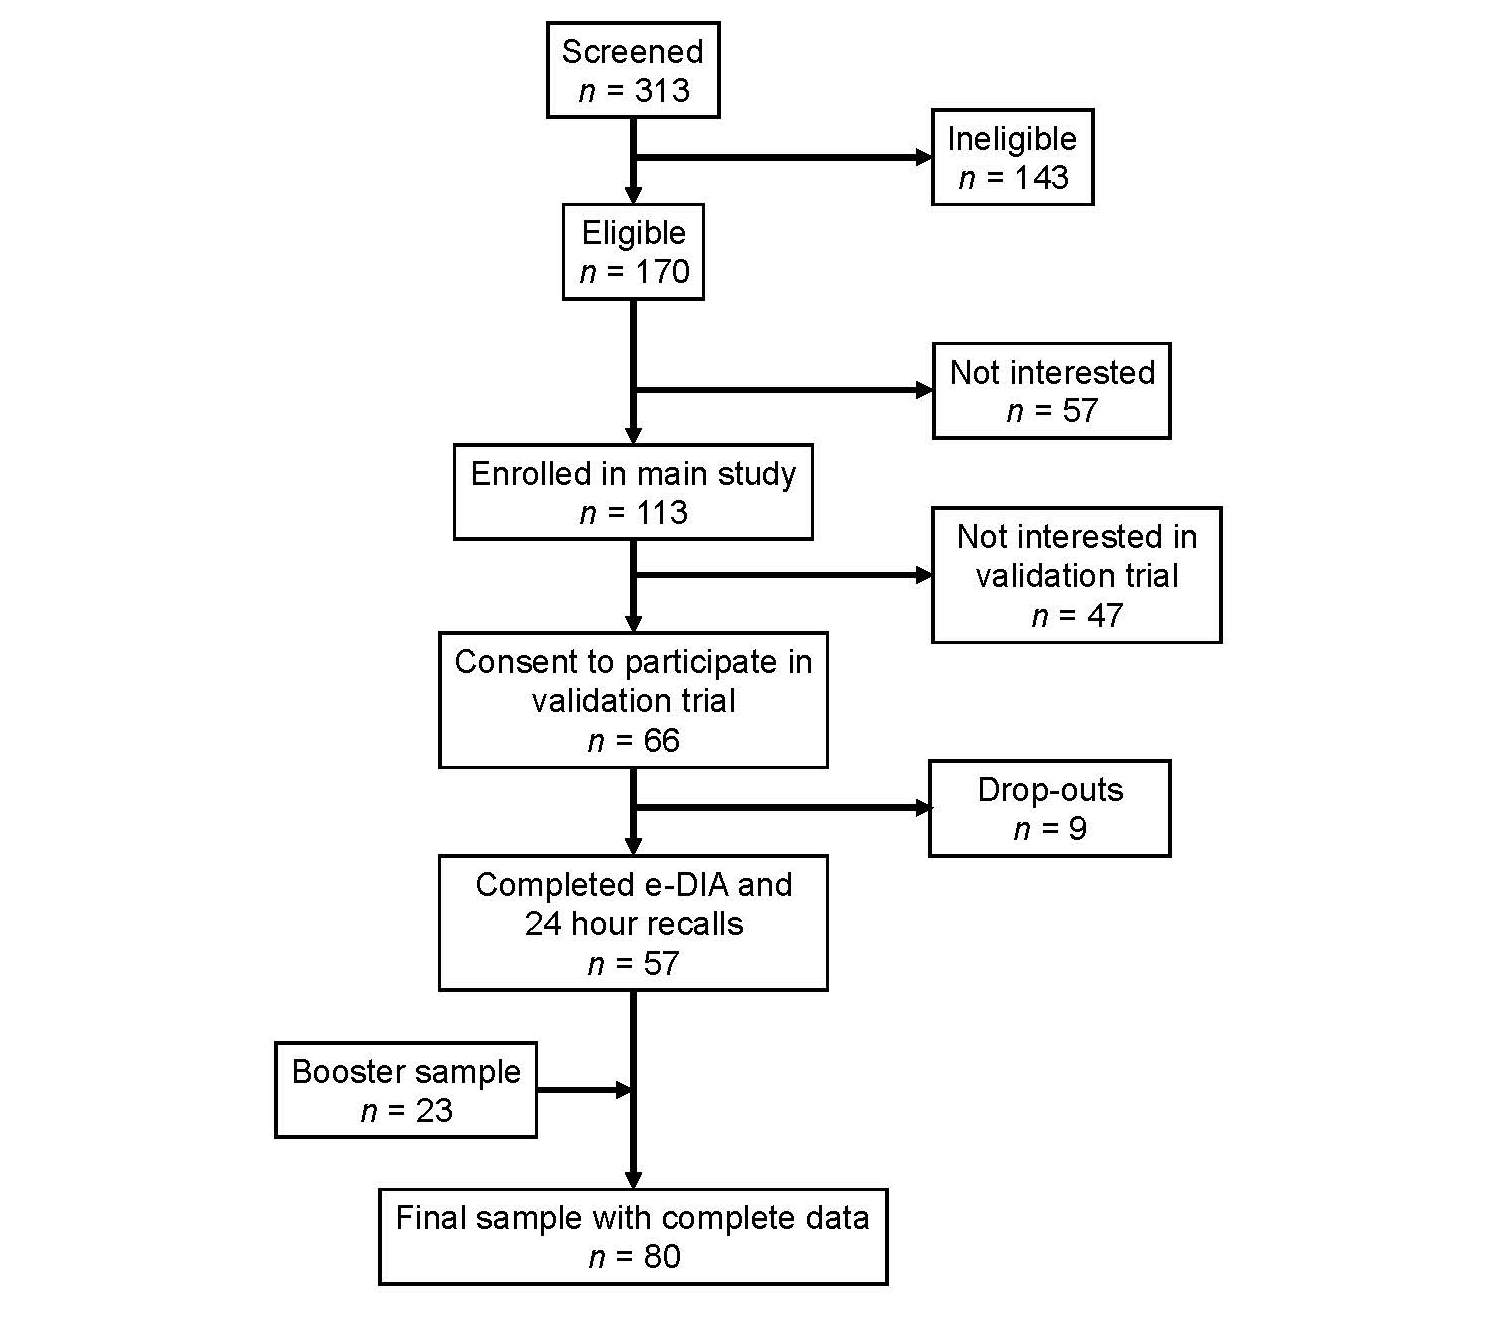 Jmu electronic dietary intake assessment e dia comparison of a flow chart of participant recruitment nvjuhfo Images